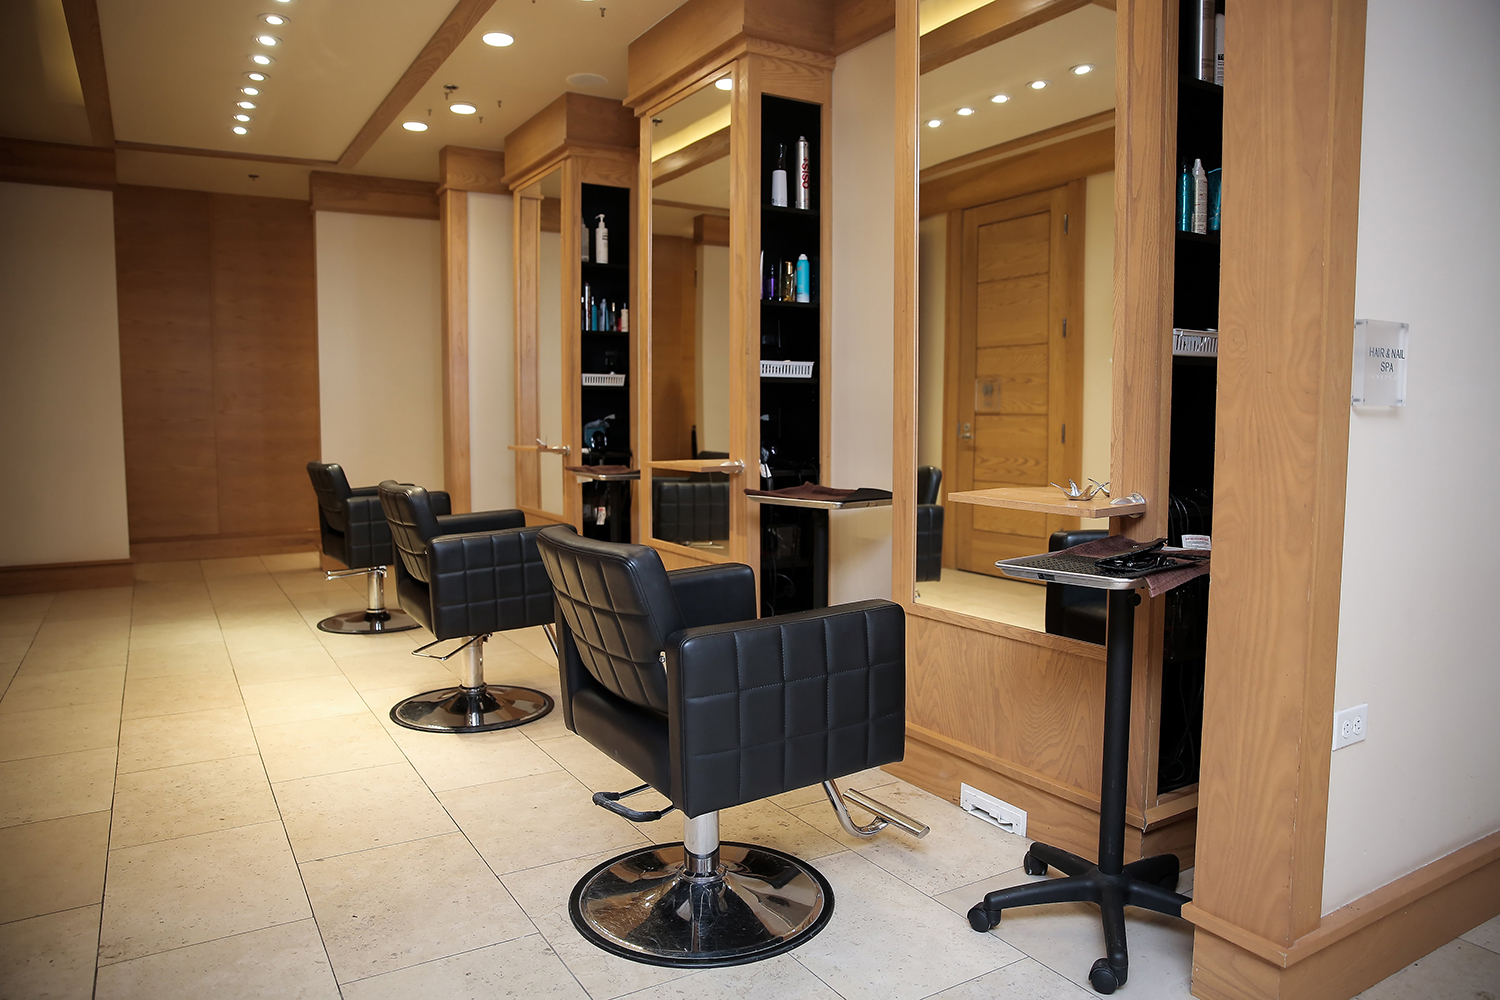 The spa also has a full-service hair and nail salon.